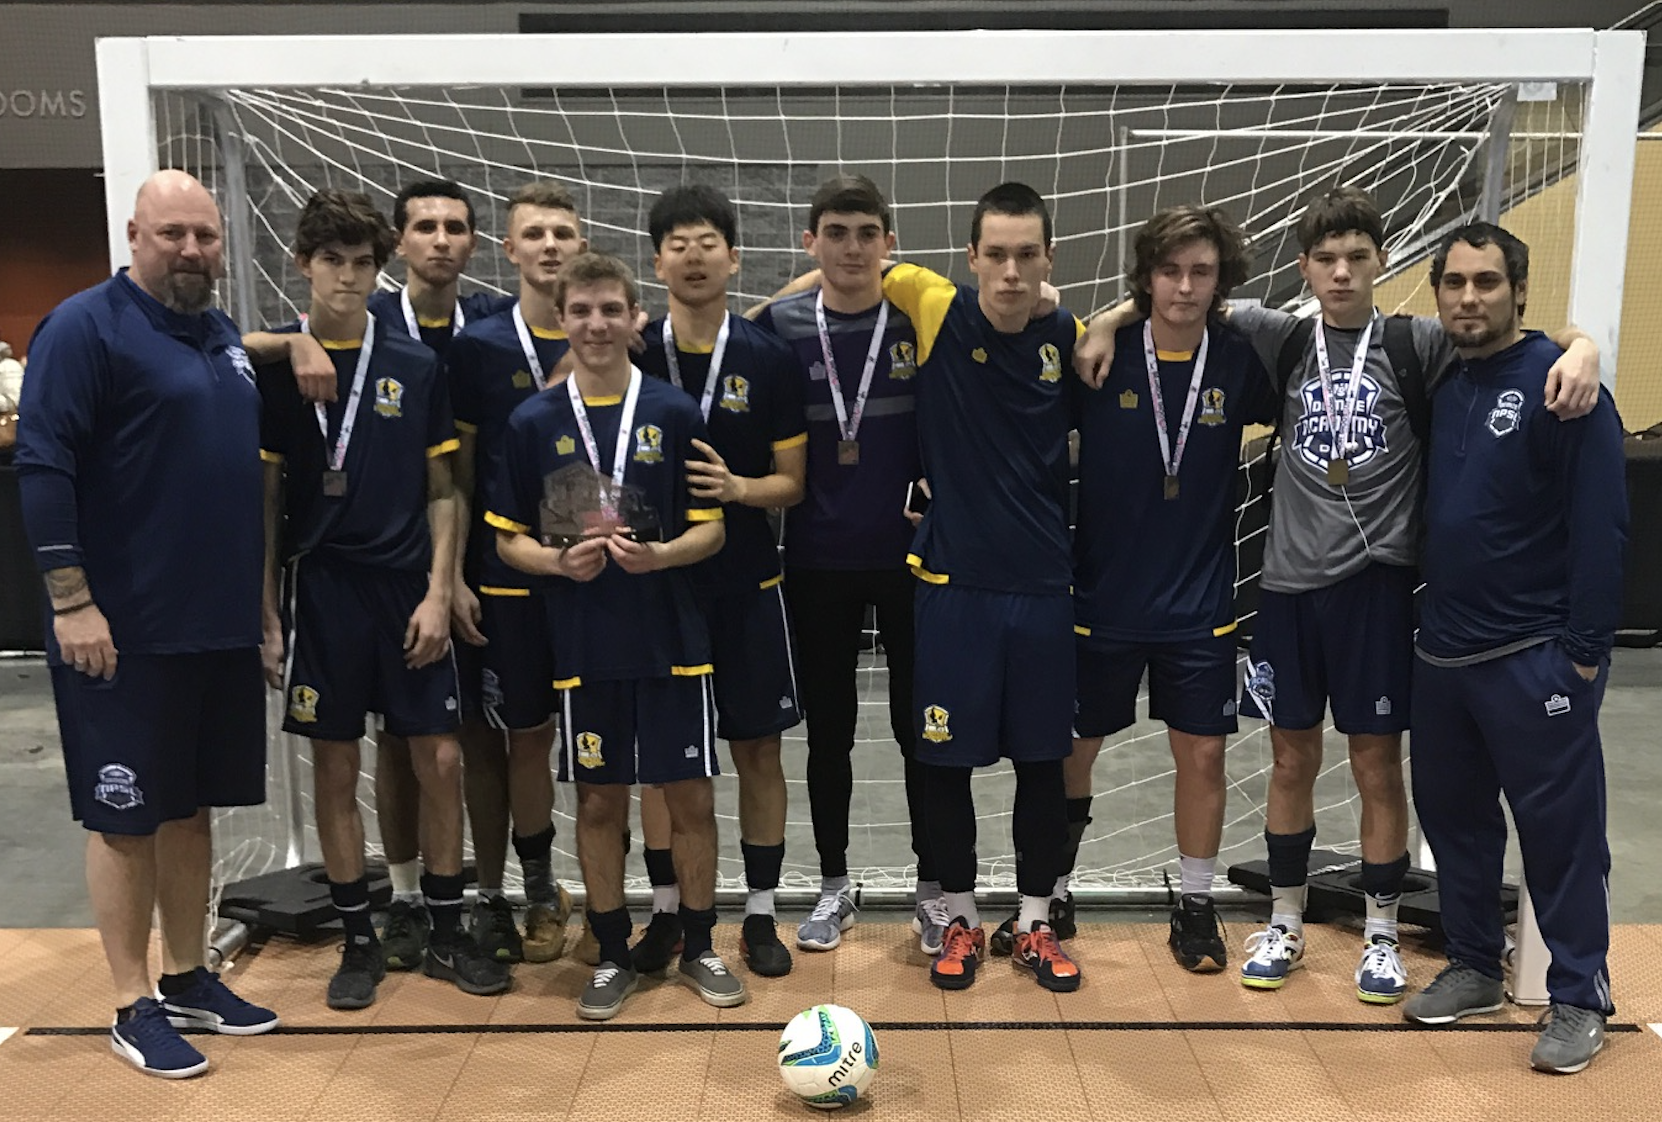 Demize Academy showcase futsal at its highest level in Branson Shootout